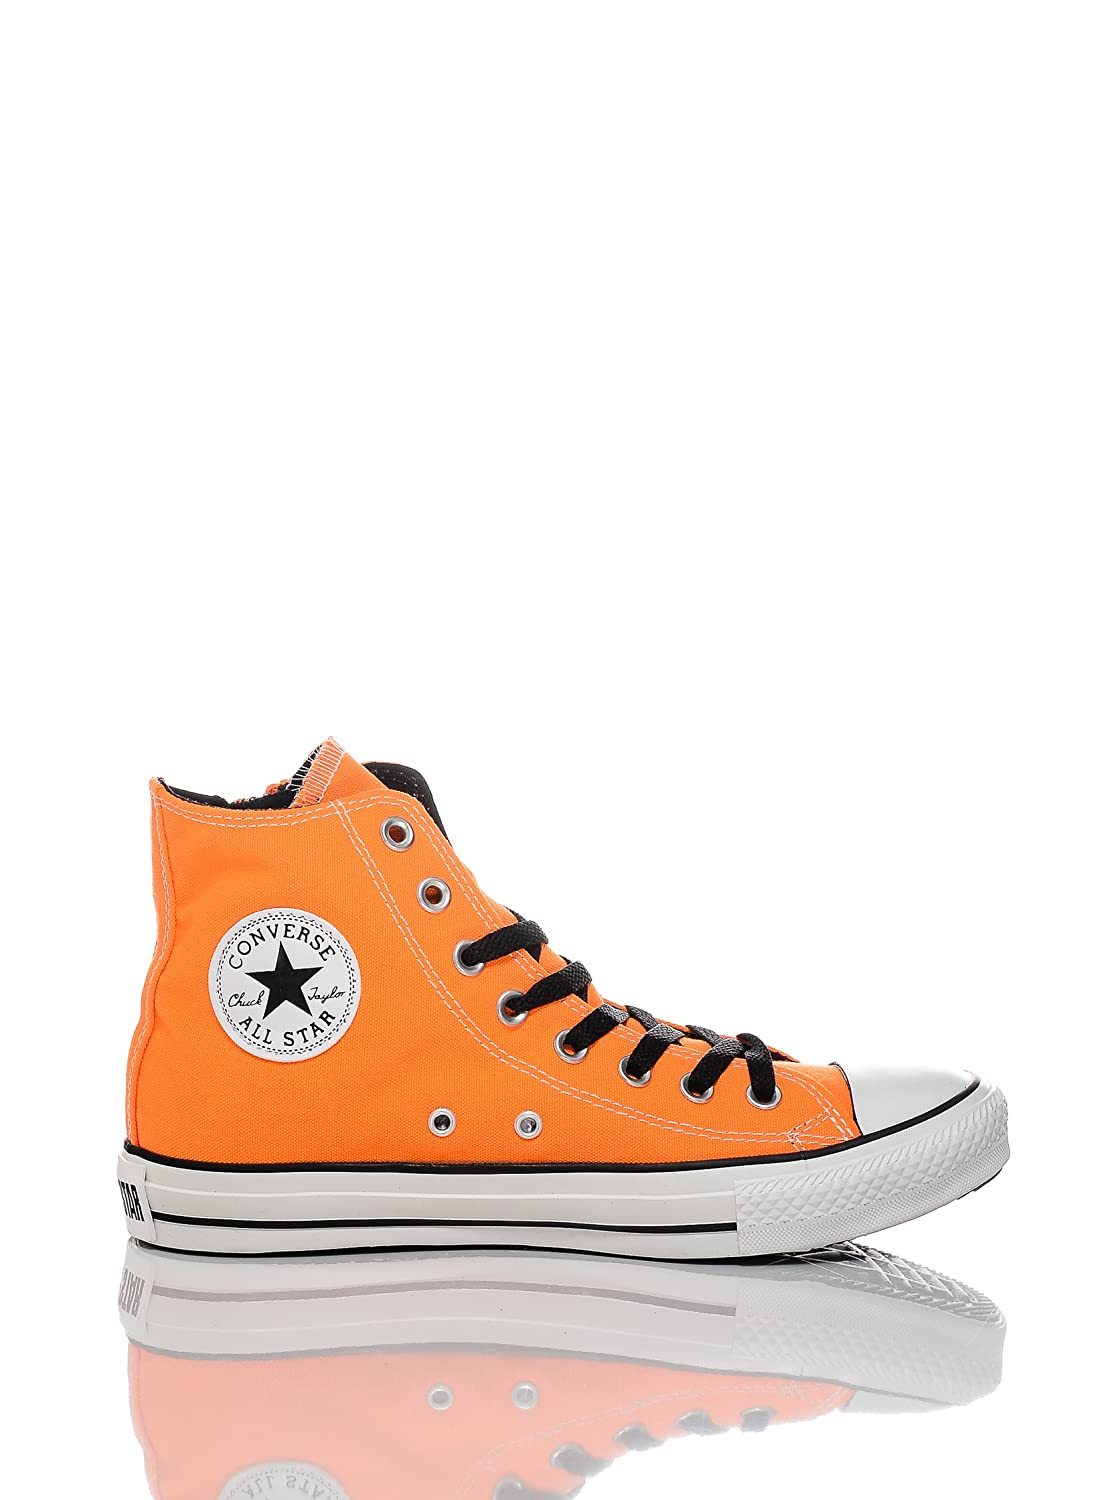 Converse Sneakers All Star Side Zip orange/schwarz orange/schwarz orange/schwarz EU 39 (US 6) - 494710